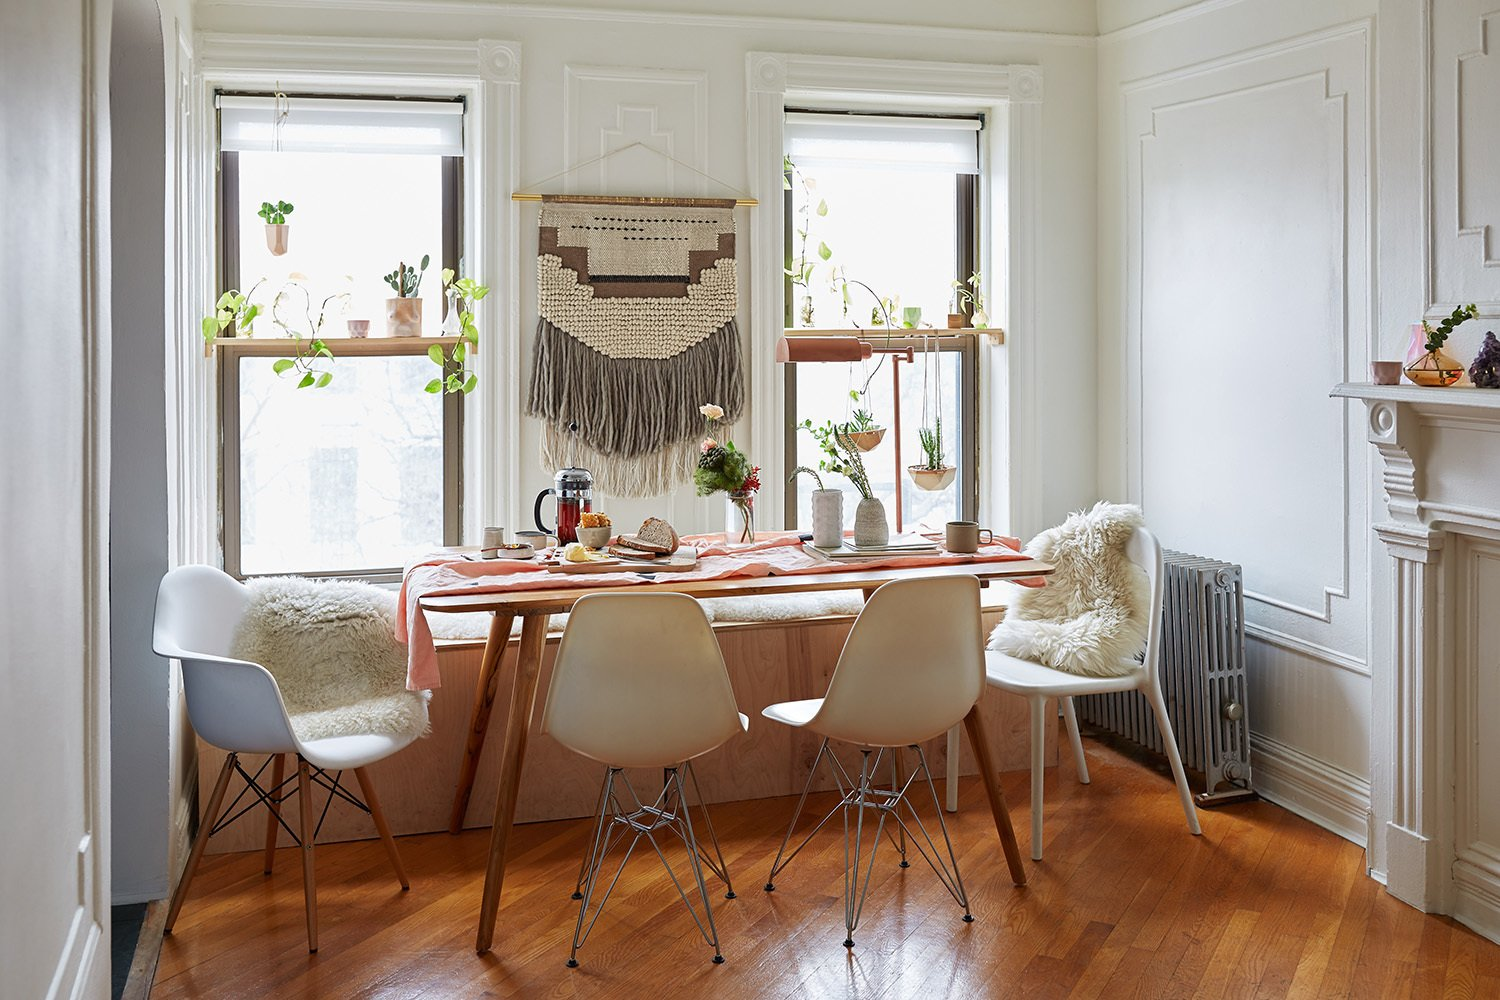 The couple's changes to the space were mostly decorative. They built the custom bench in the dining area, which holds a litter box for their cat on one end and storage space on the other. The table was purchased at The Source in Brooklyn and the wall hanging is from CB2. Tagged: Dining Room, Chair, and Table.  Photo 3 of 11 in Cozy and Compact: 10 Tiny Homes in the Big Apple from 500 Square Feet Is Just Right in Greenpoint